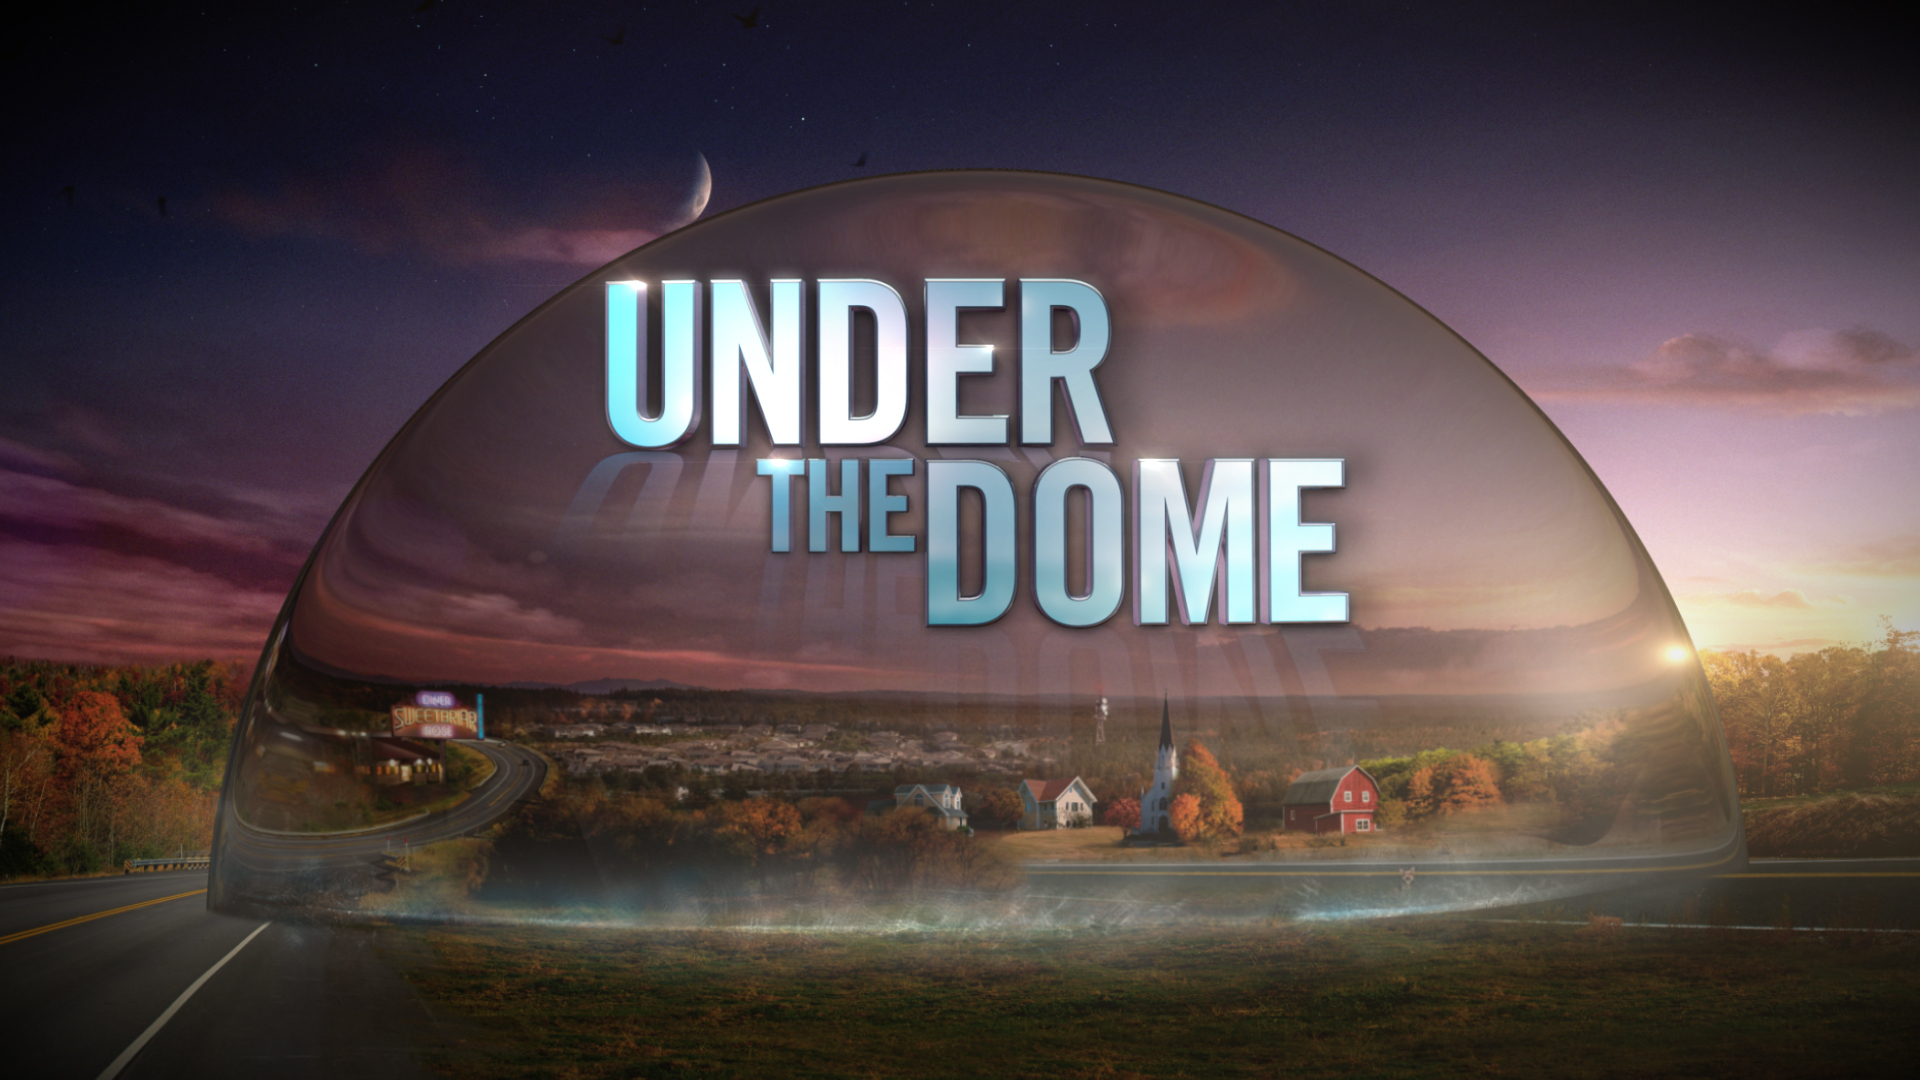 La Cúpula (Under The Dome) Podcast – PREVIOUSLY ON S01E06